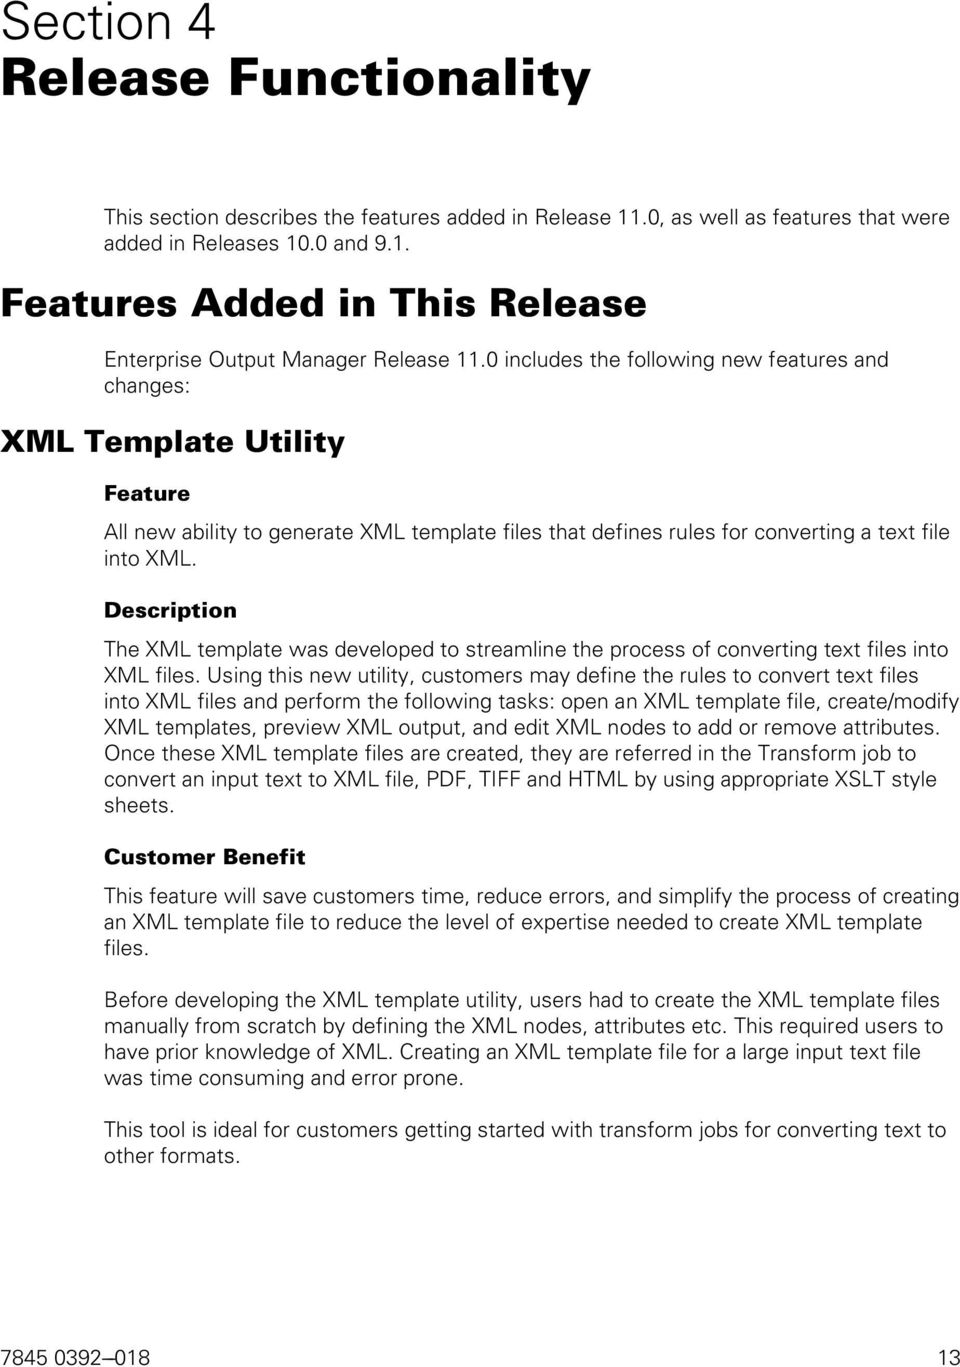 Description The XML template was developed to streamline the process of converting text files into XML files.